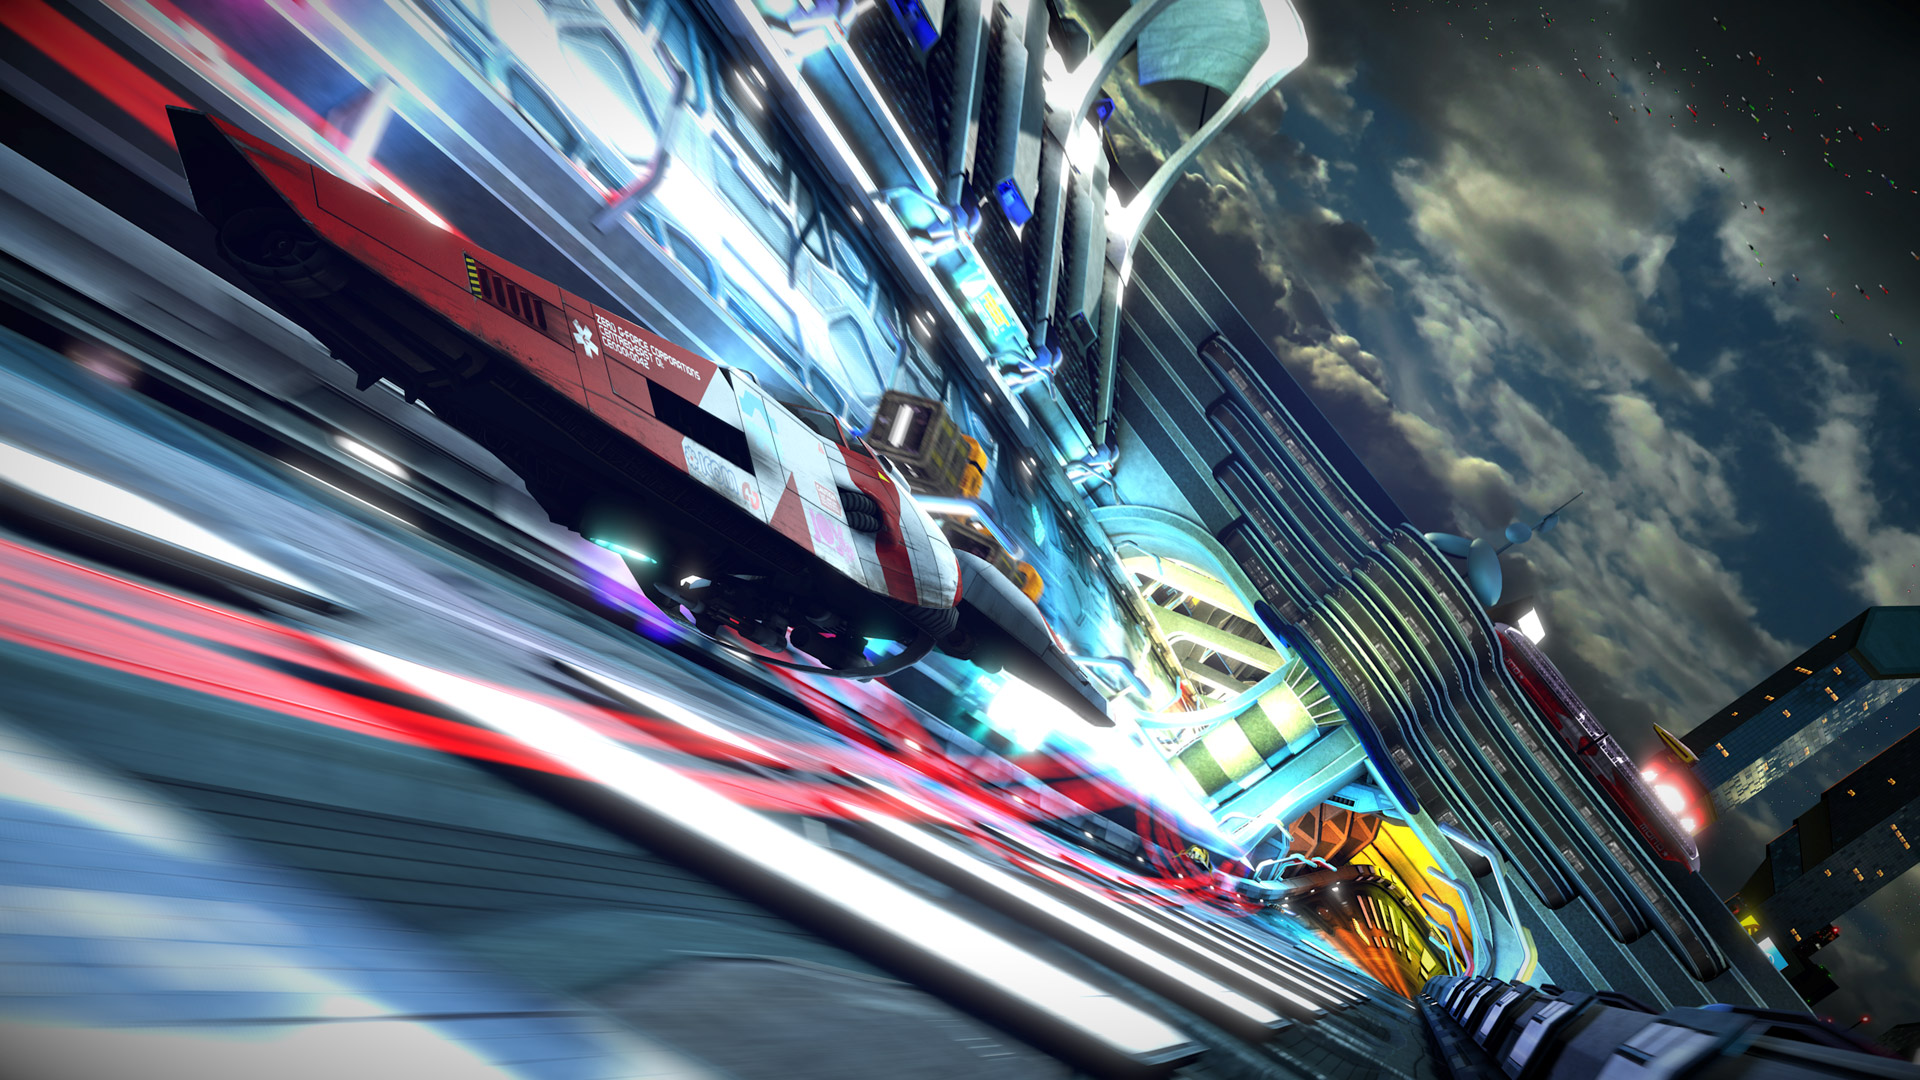 Free Wipeout HD Wallpaper in 1920x1080